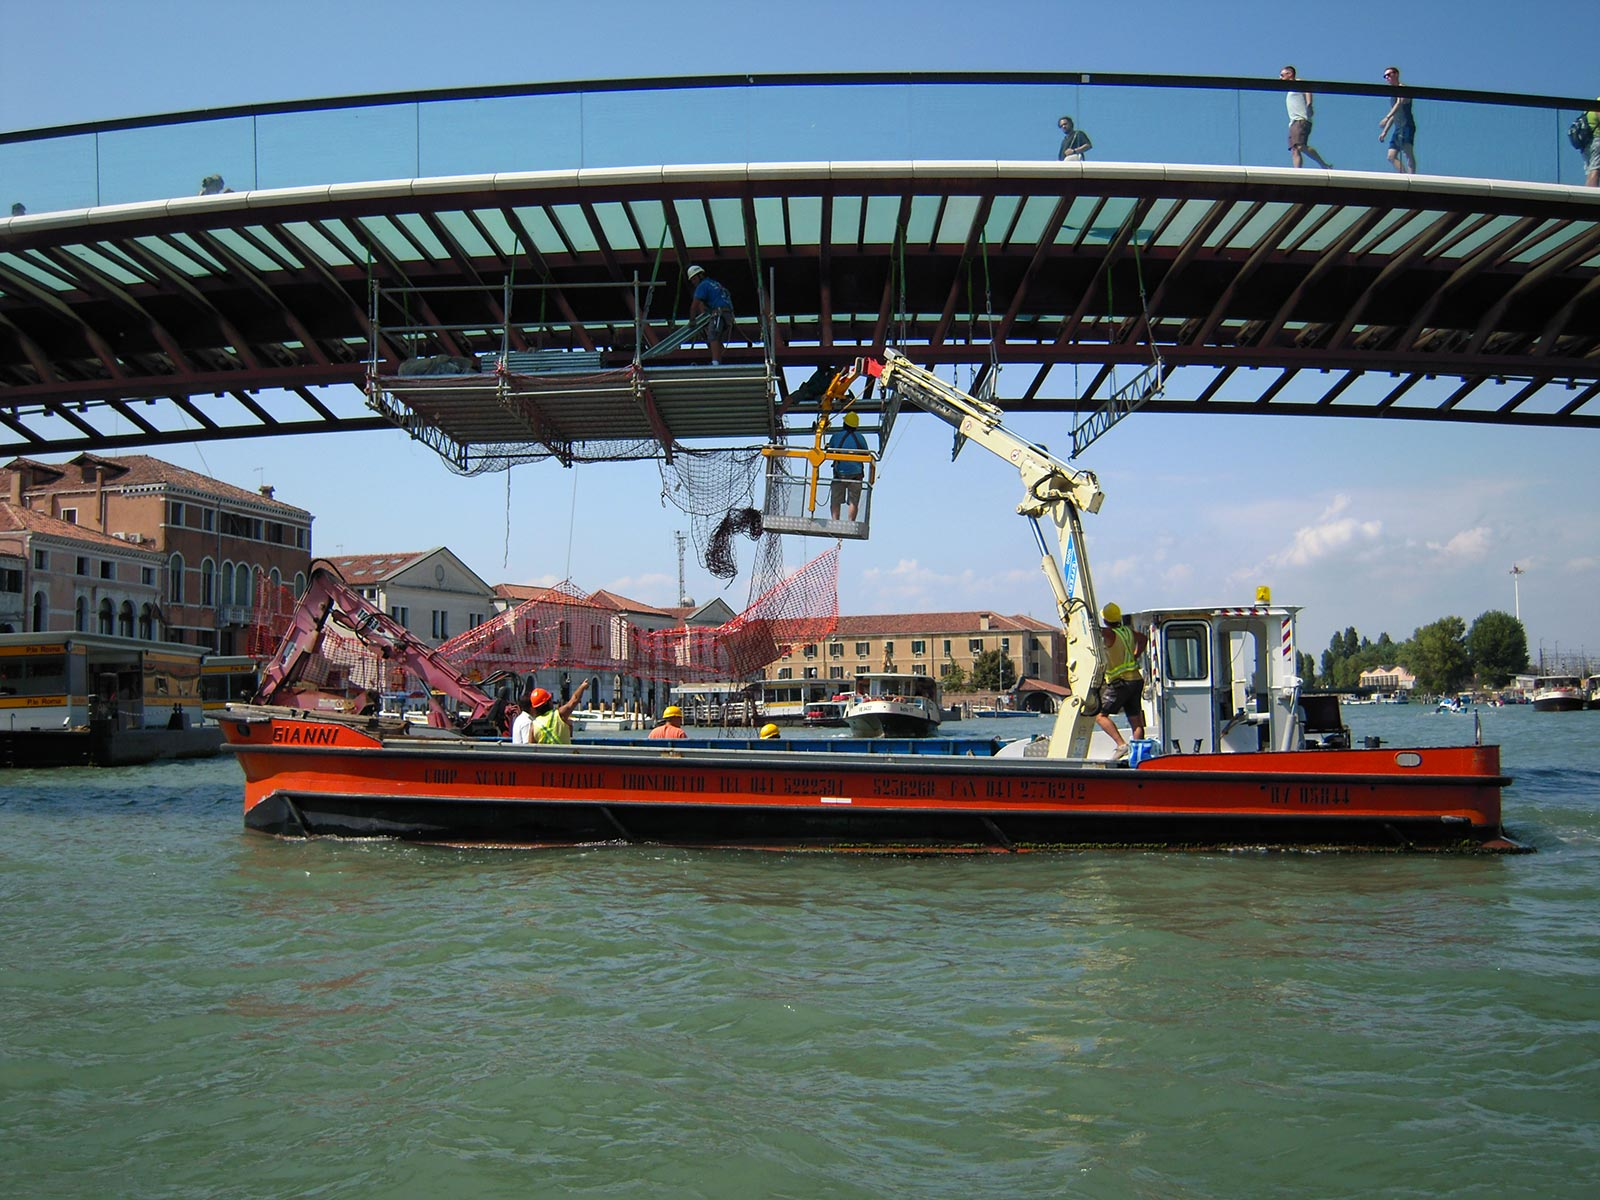 Maintenance of the Calatrava bridge